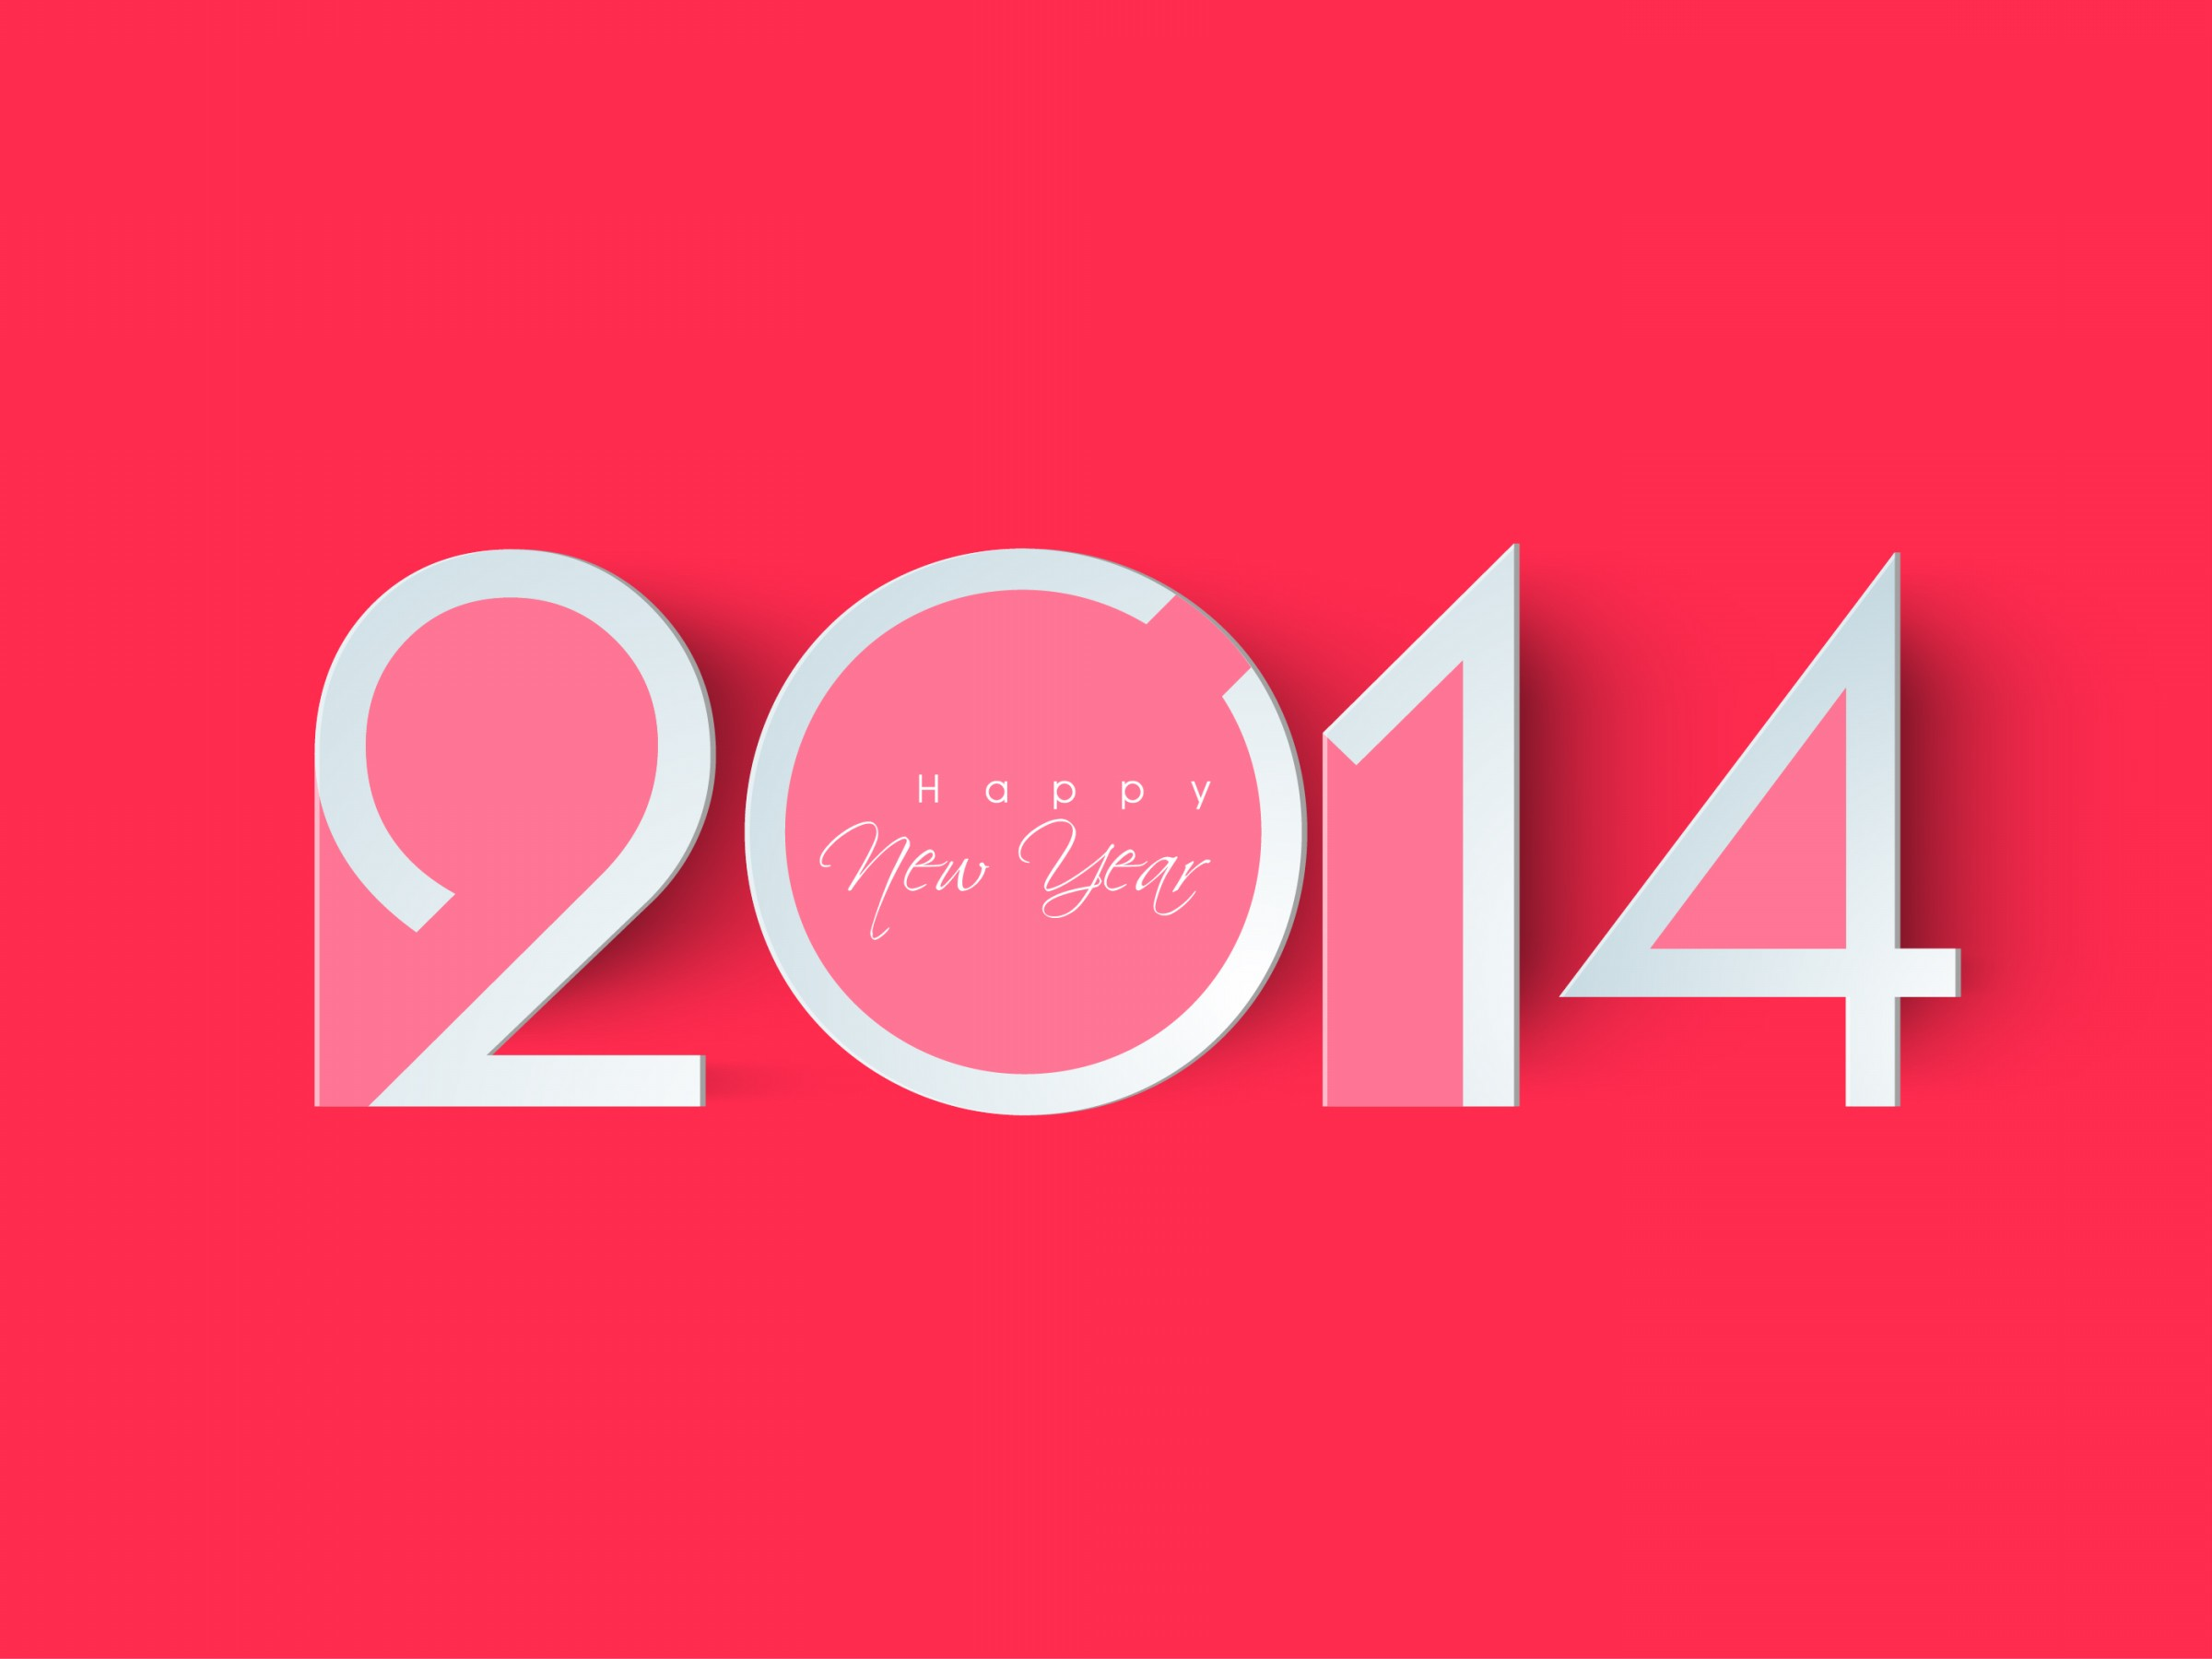 cool wallpaper 2014 happy new year